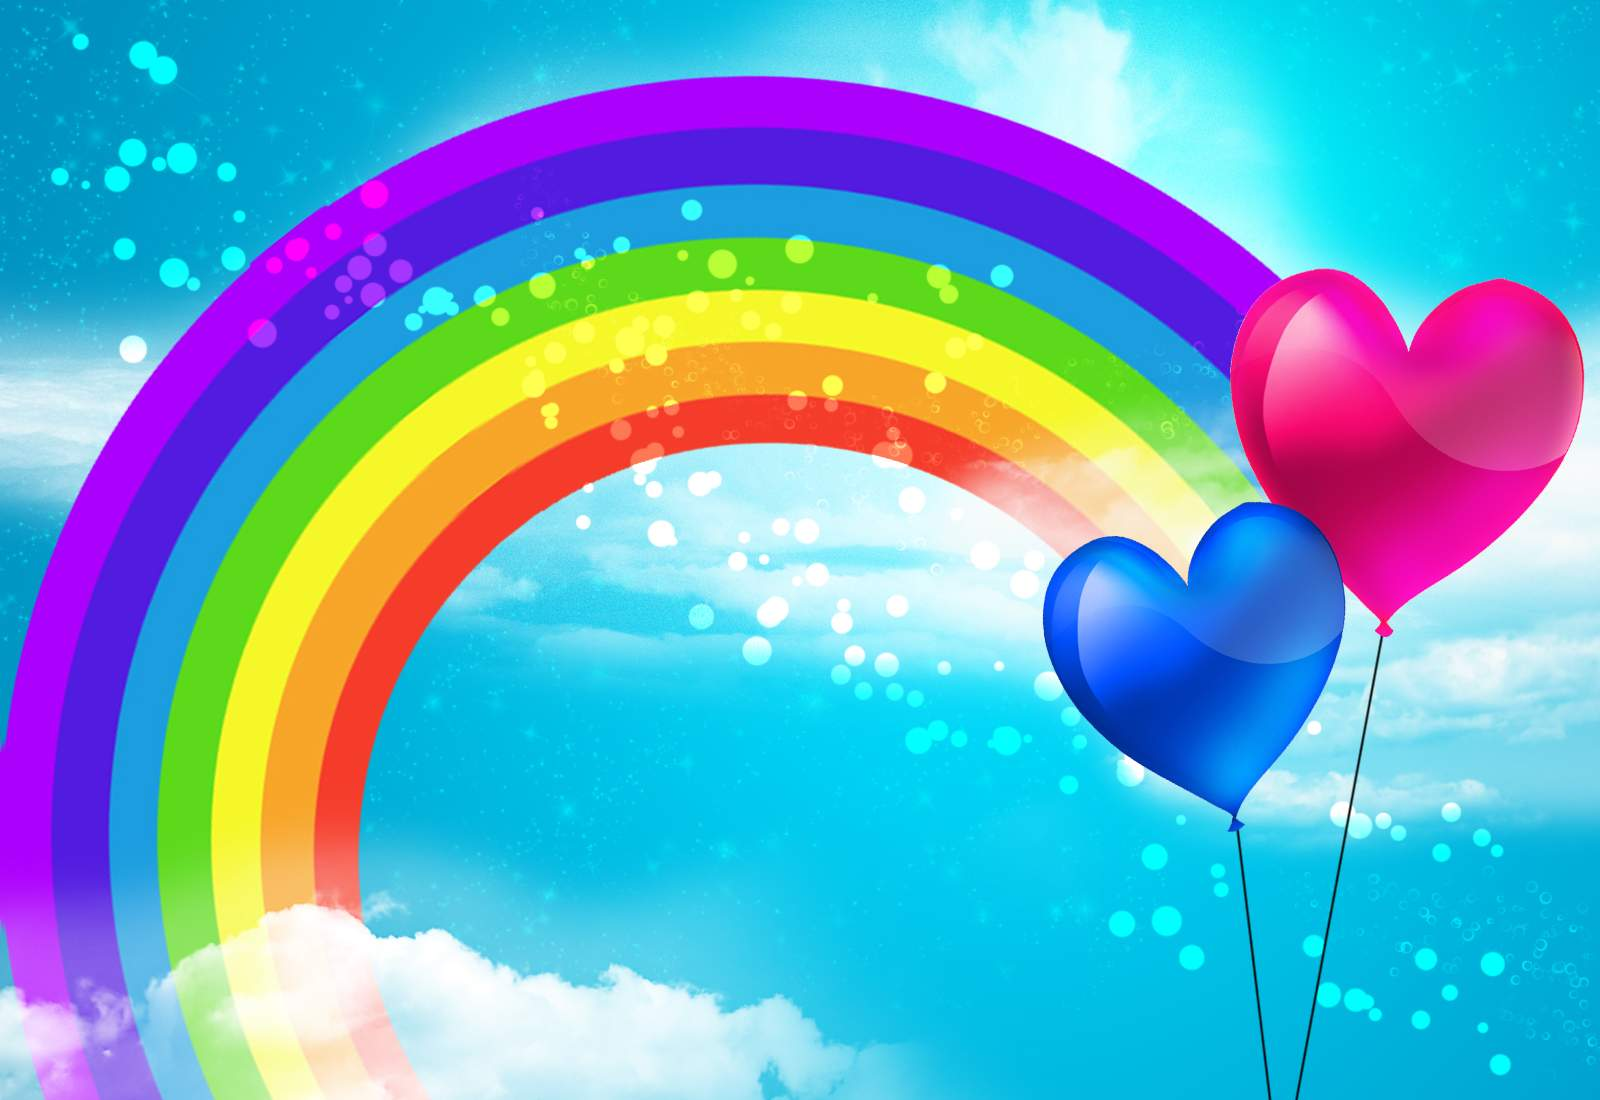 rainbows images 500 collection hd wallpaper